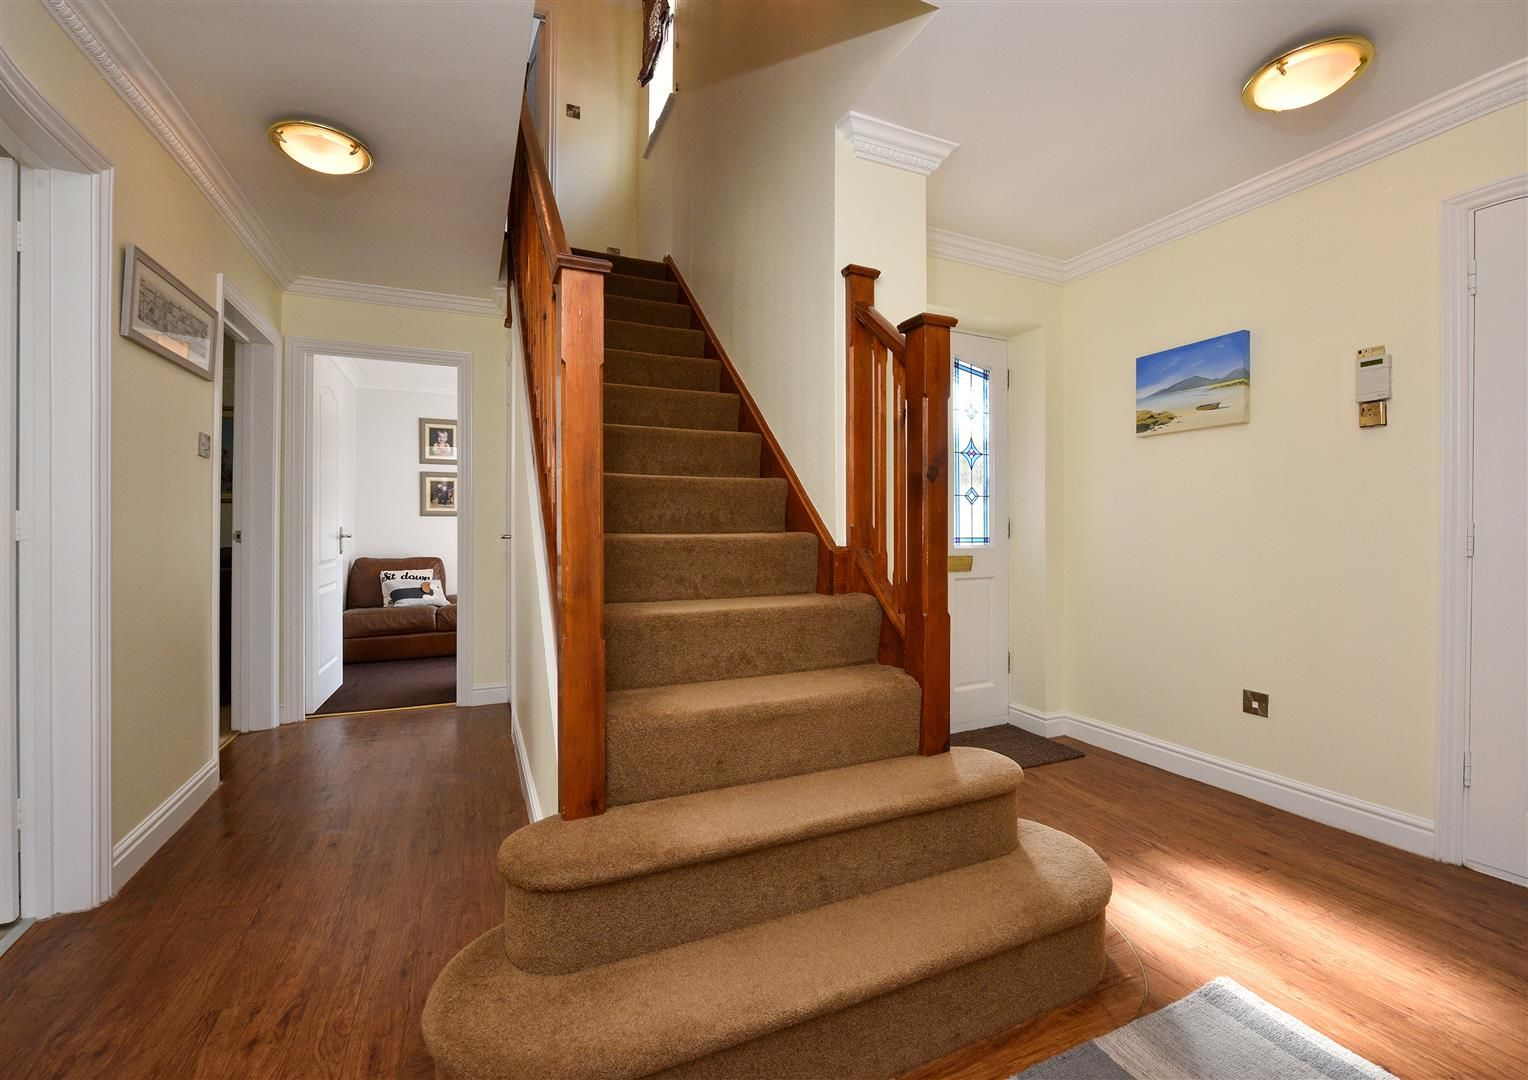 5 bed house for sale in Hagley  - Property Image 26